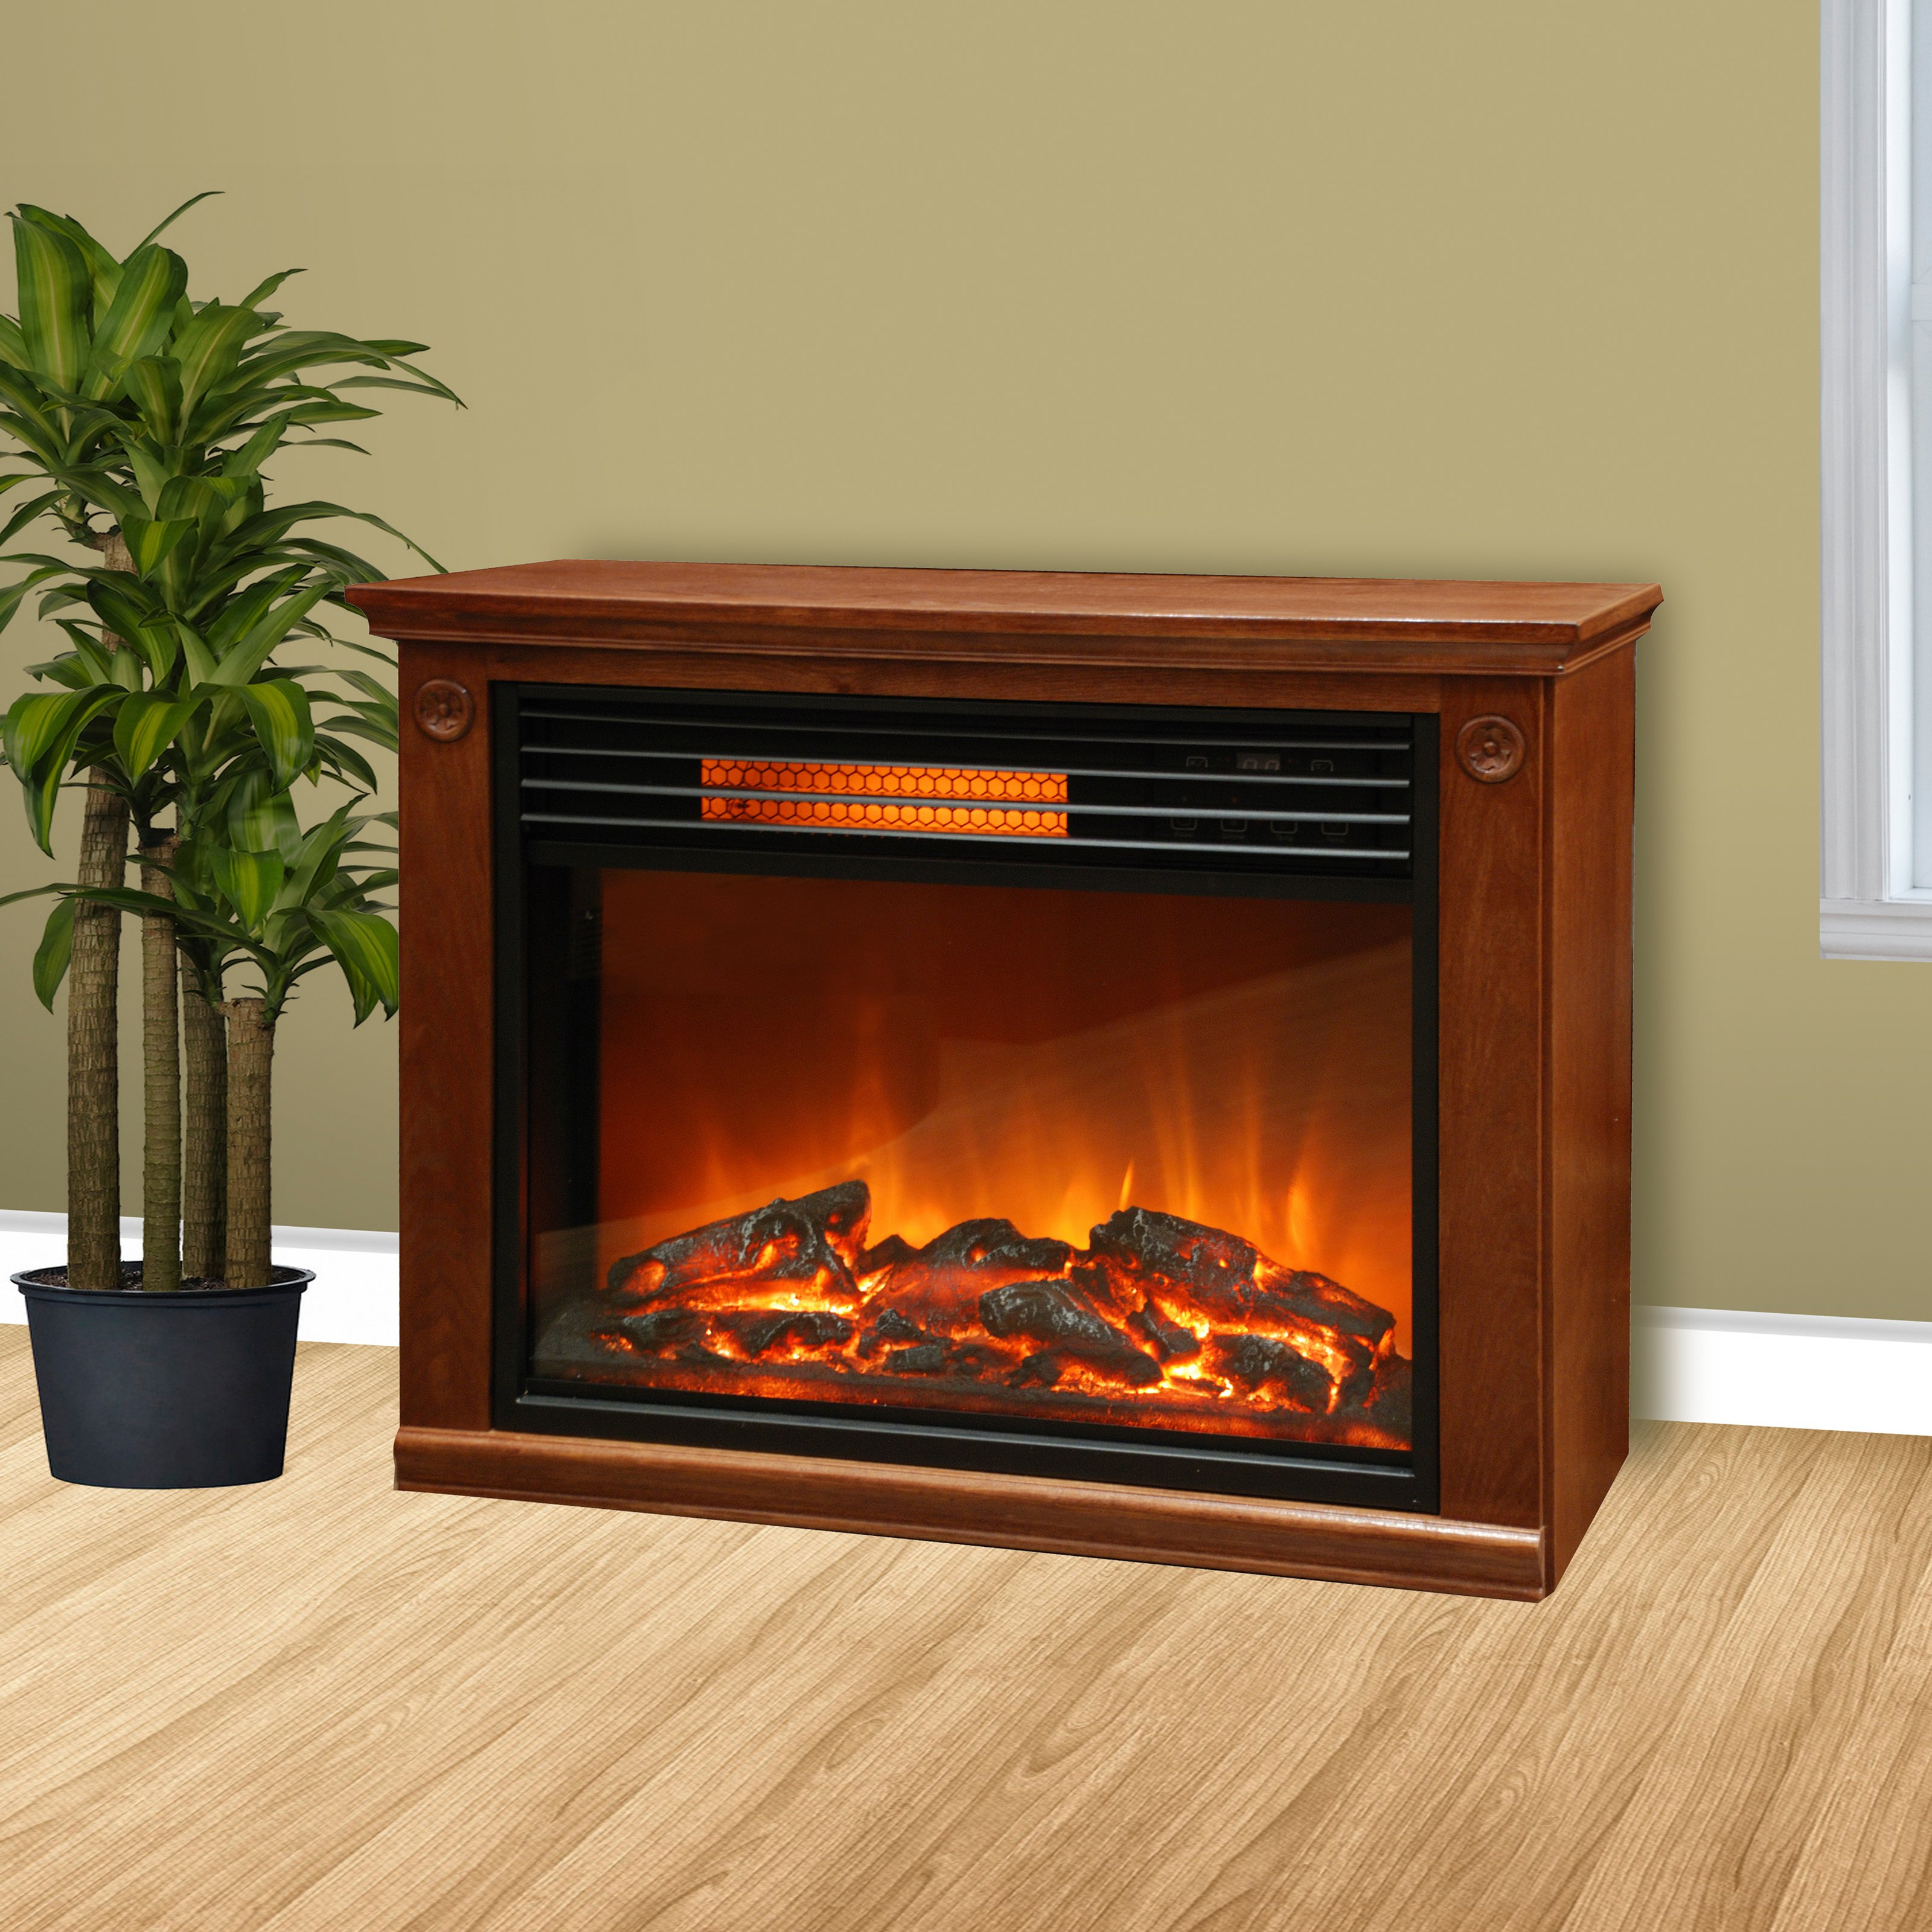 Buy Lifepro by Lifesmart LS2002FRP13 Infrared Fireplace - Brown at Walmart.com